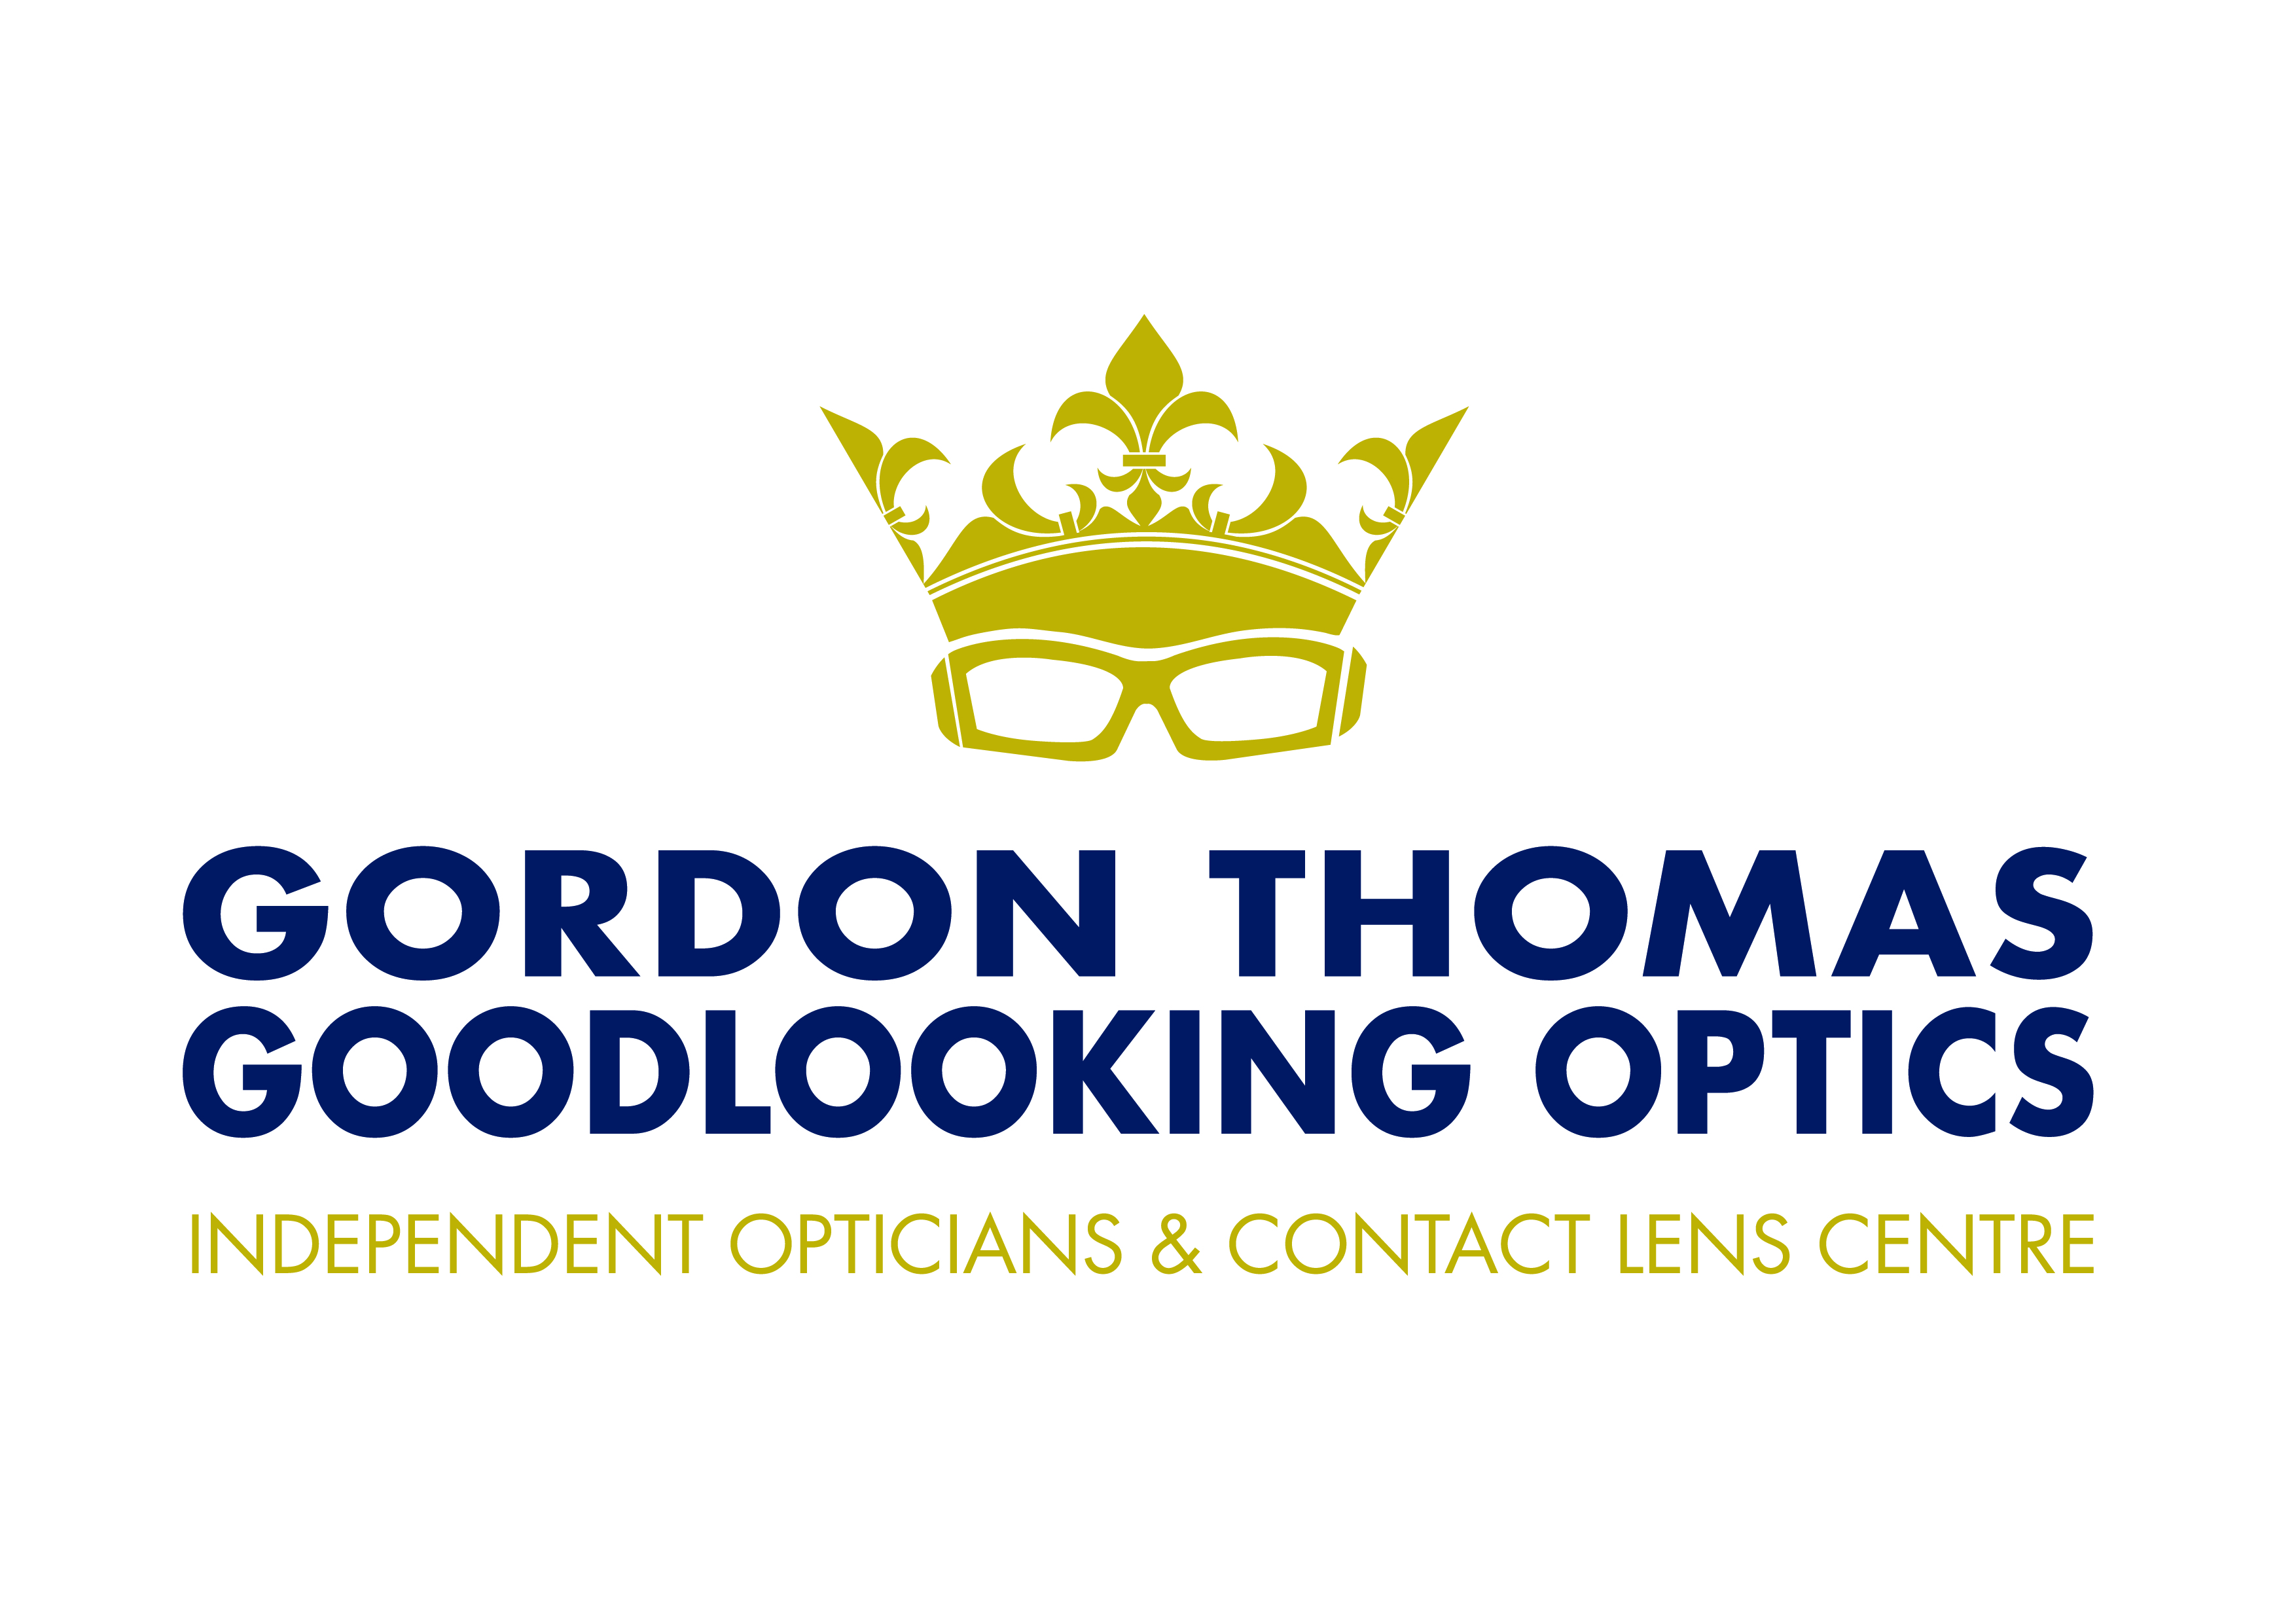 Gordon Thomas Good Looking Optics